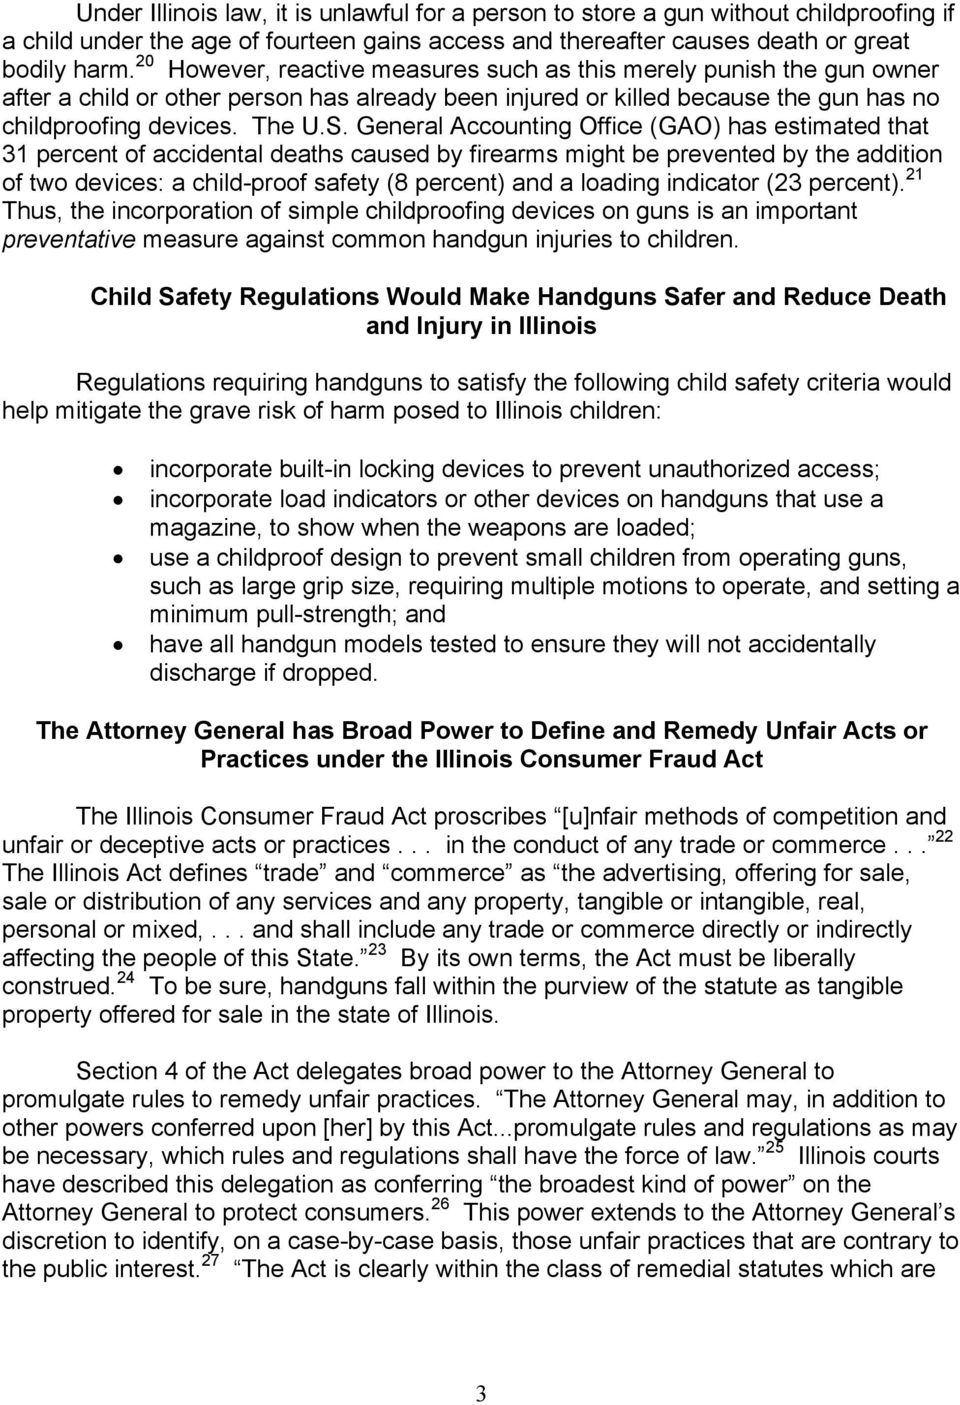 General Accounting Office (GAO) has estimated that 31 percent of accidental deaths caused by firearms might be prevented by the addition of two devices: a child-proof safety (8 percent) and a loading